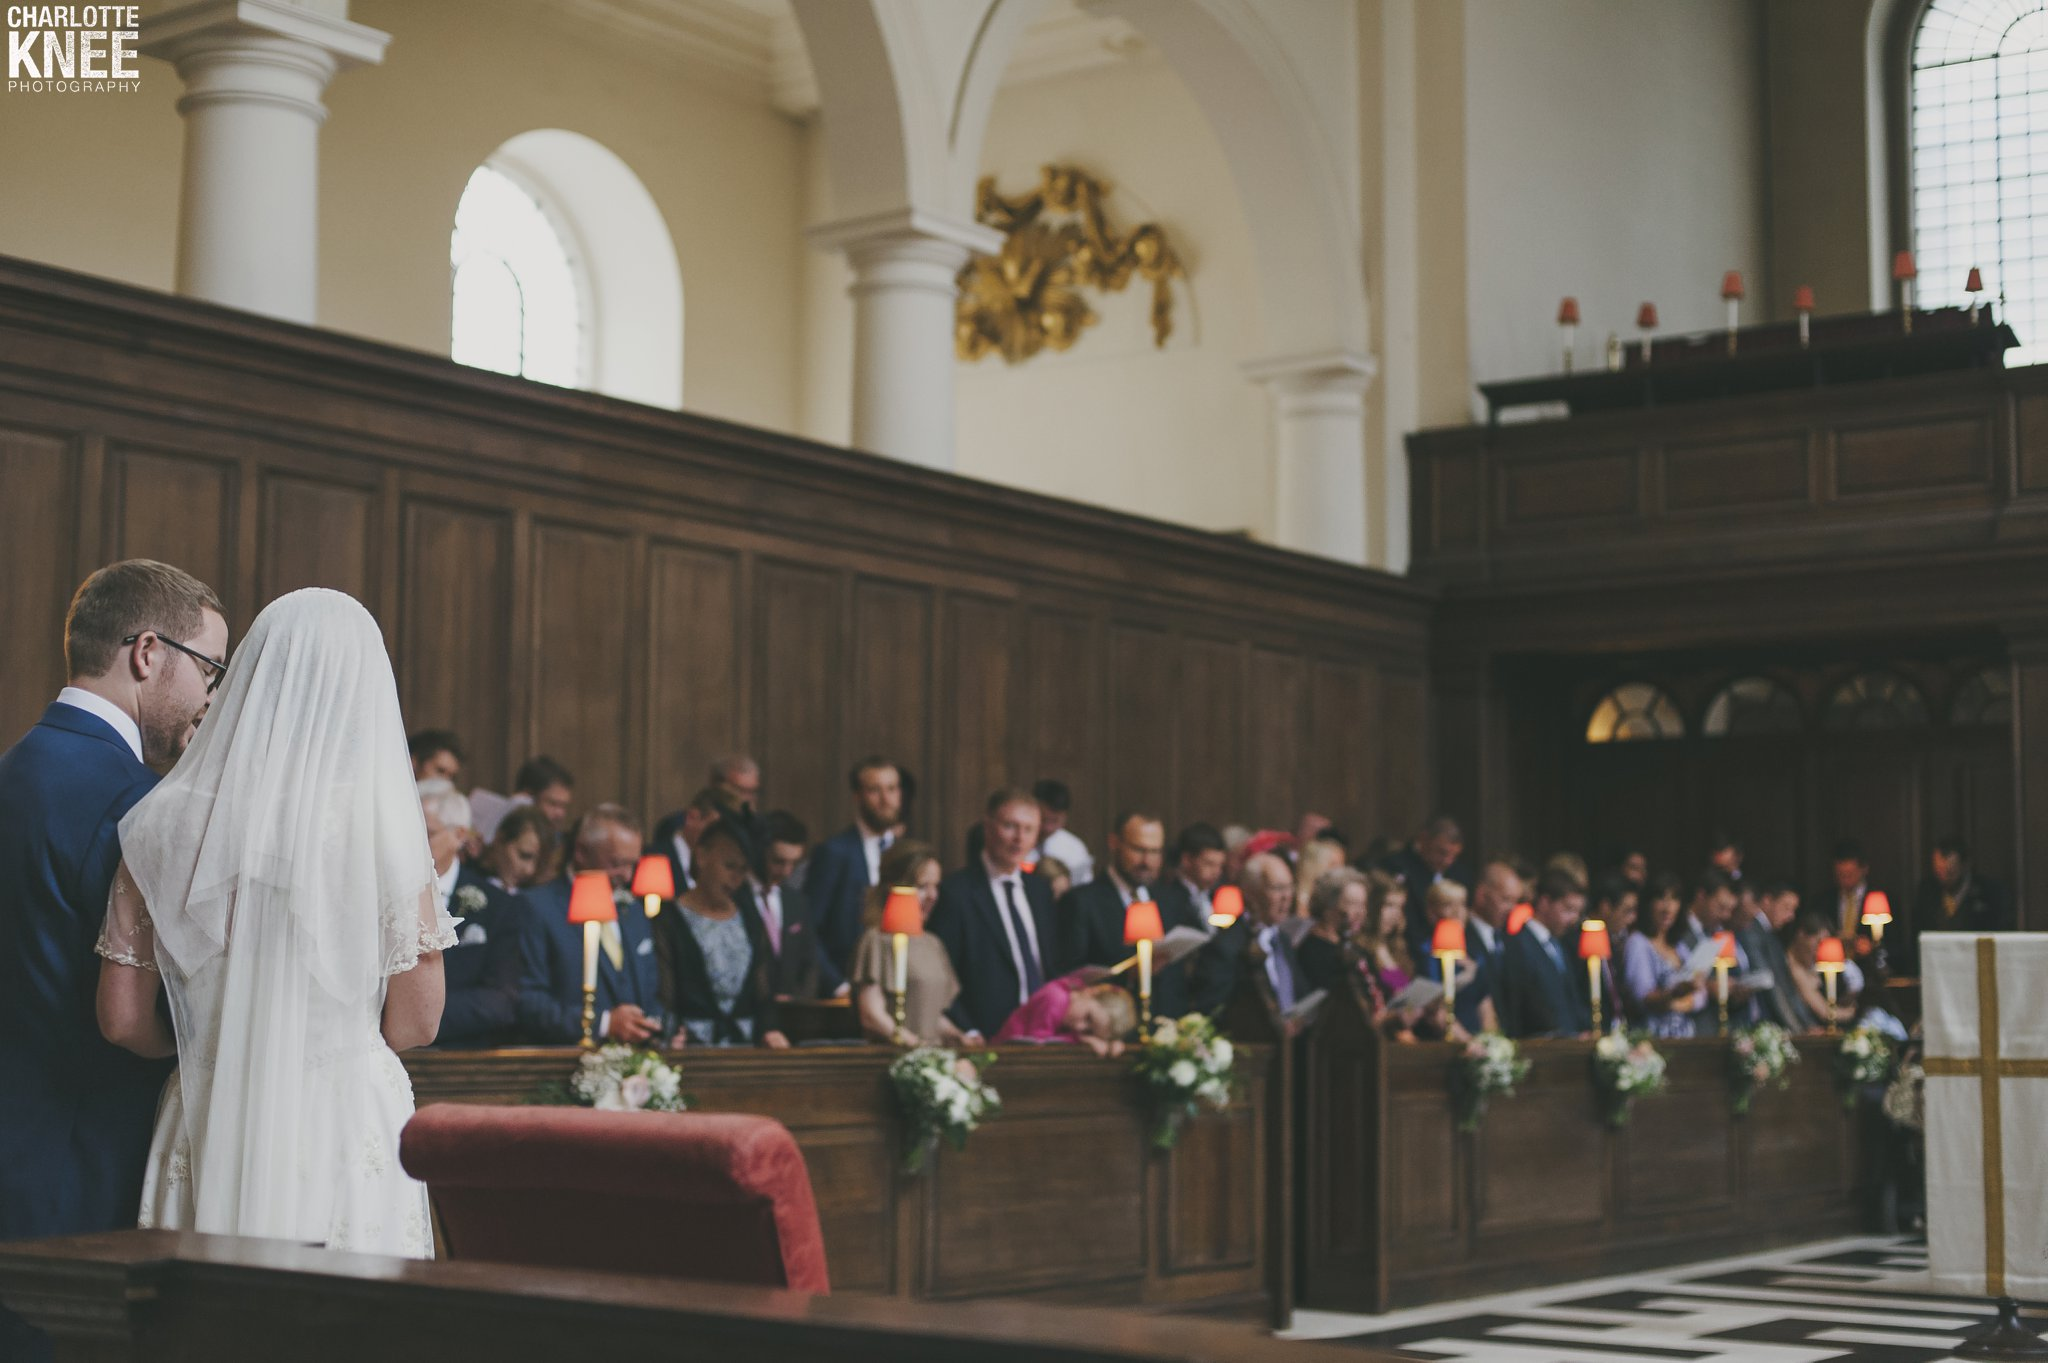 Saddlers Hall London Wedding Photography Copyright Charlotte Knee Photography_0091.jpg